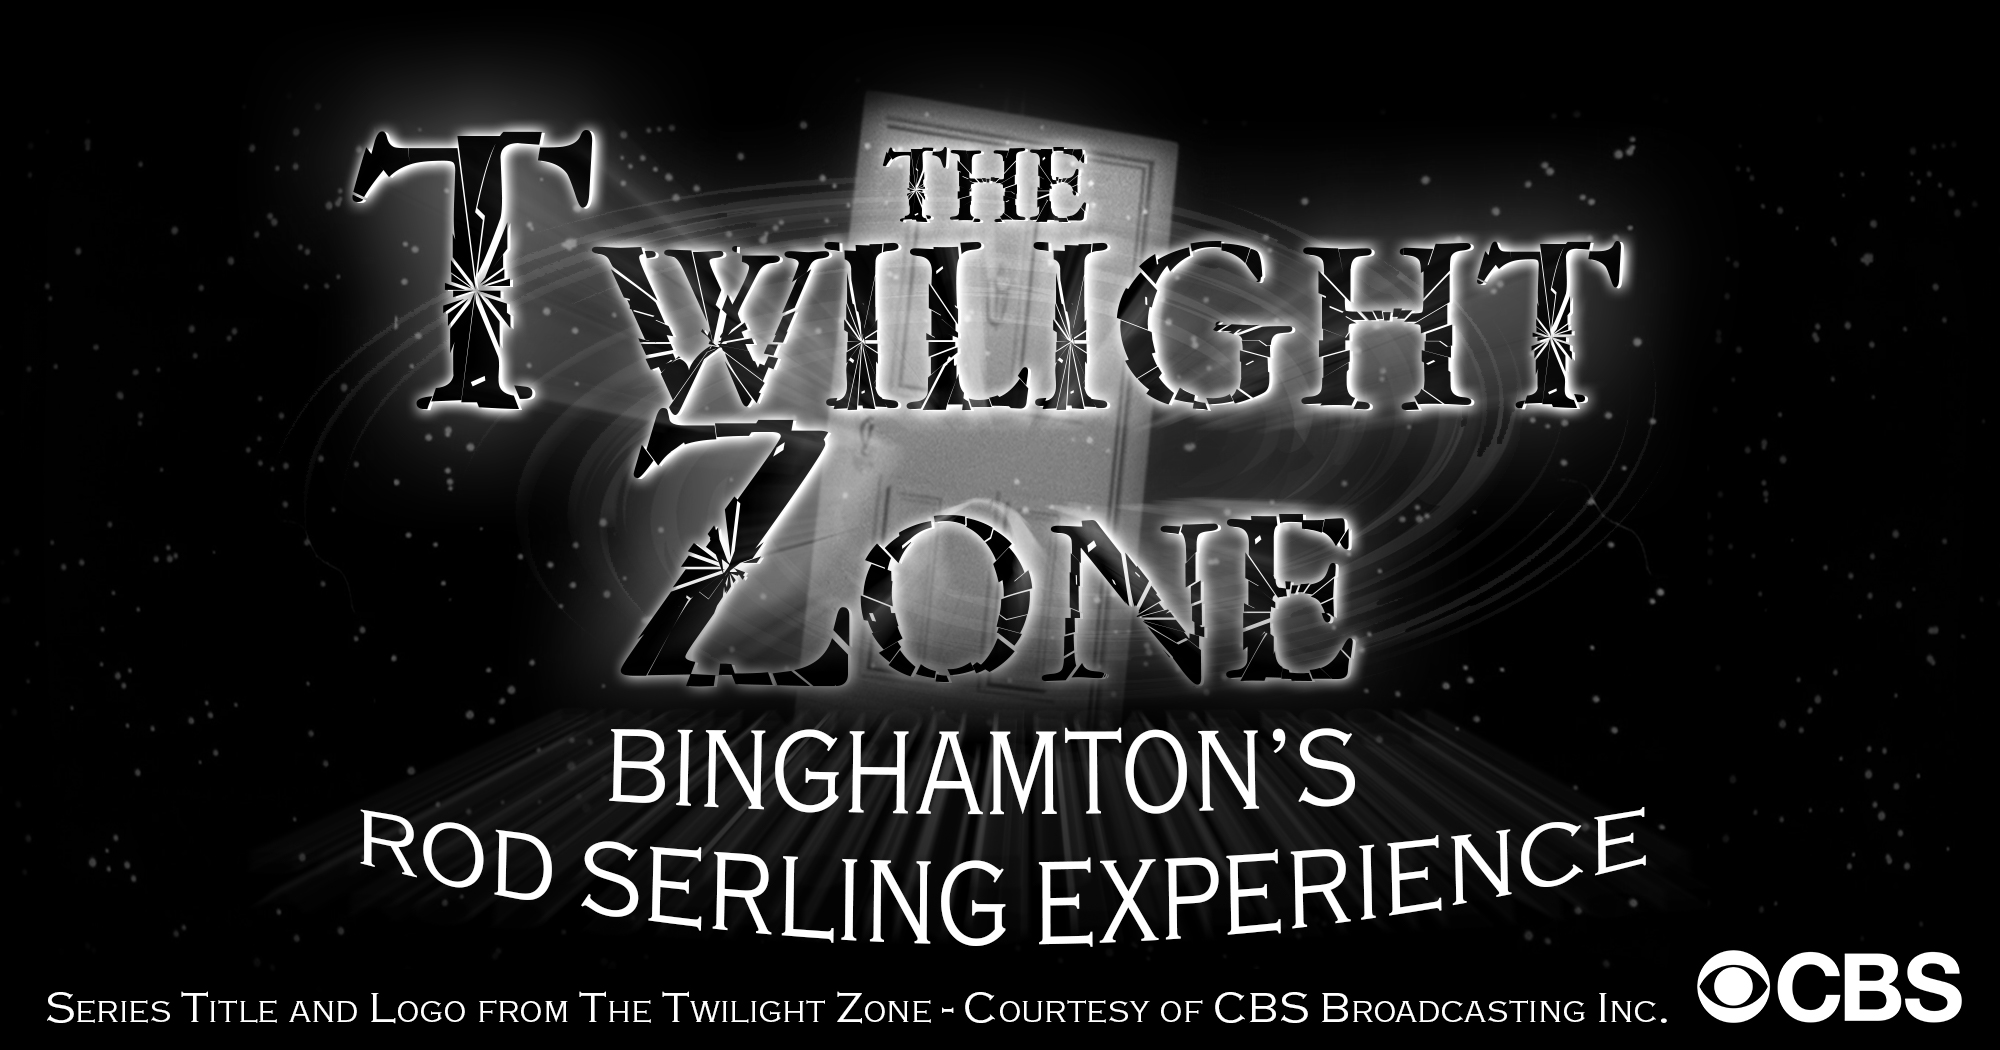 Image of the twilight zone escape room with shadowy letters that read twilight zone